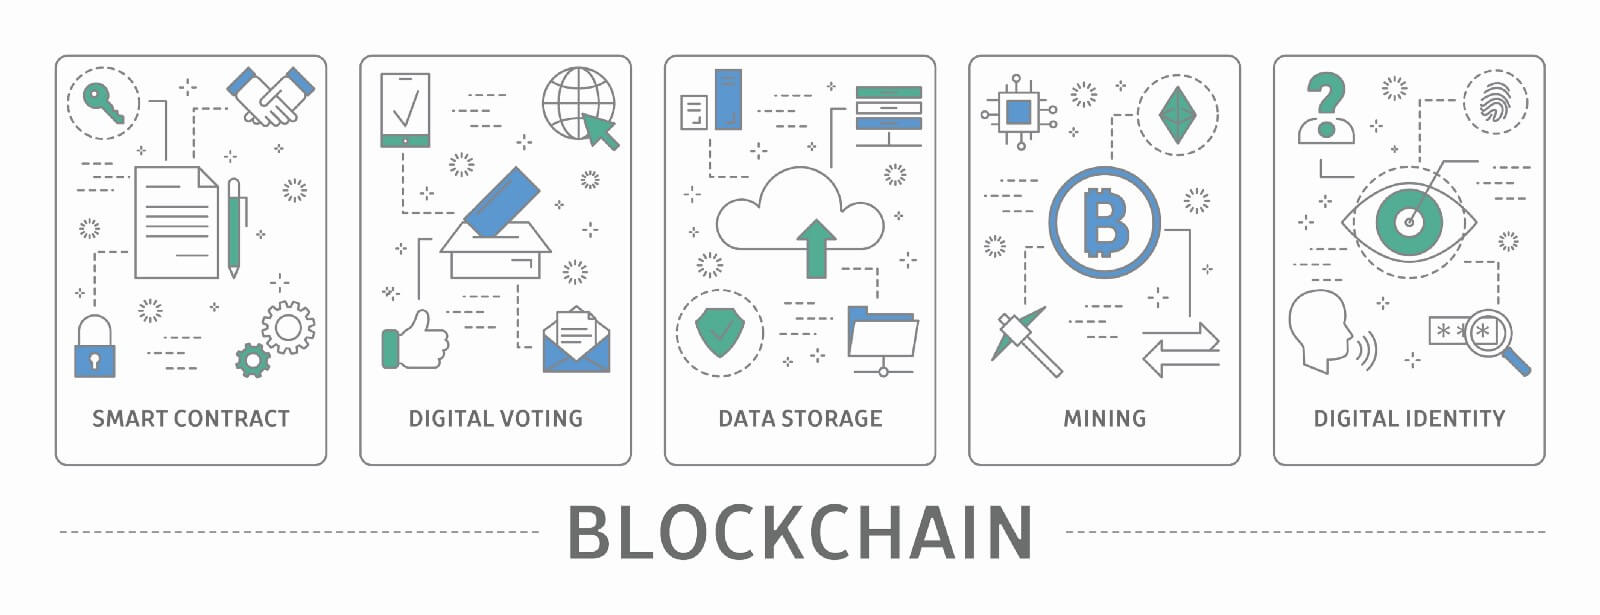 Graphical representation of Blockchain identifying 5 uses: smart contract, digital voting, data storage, mining, and digital identity